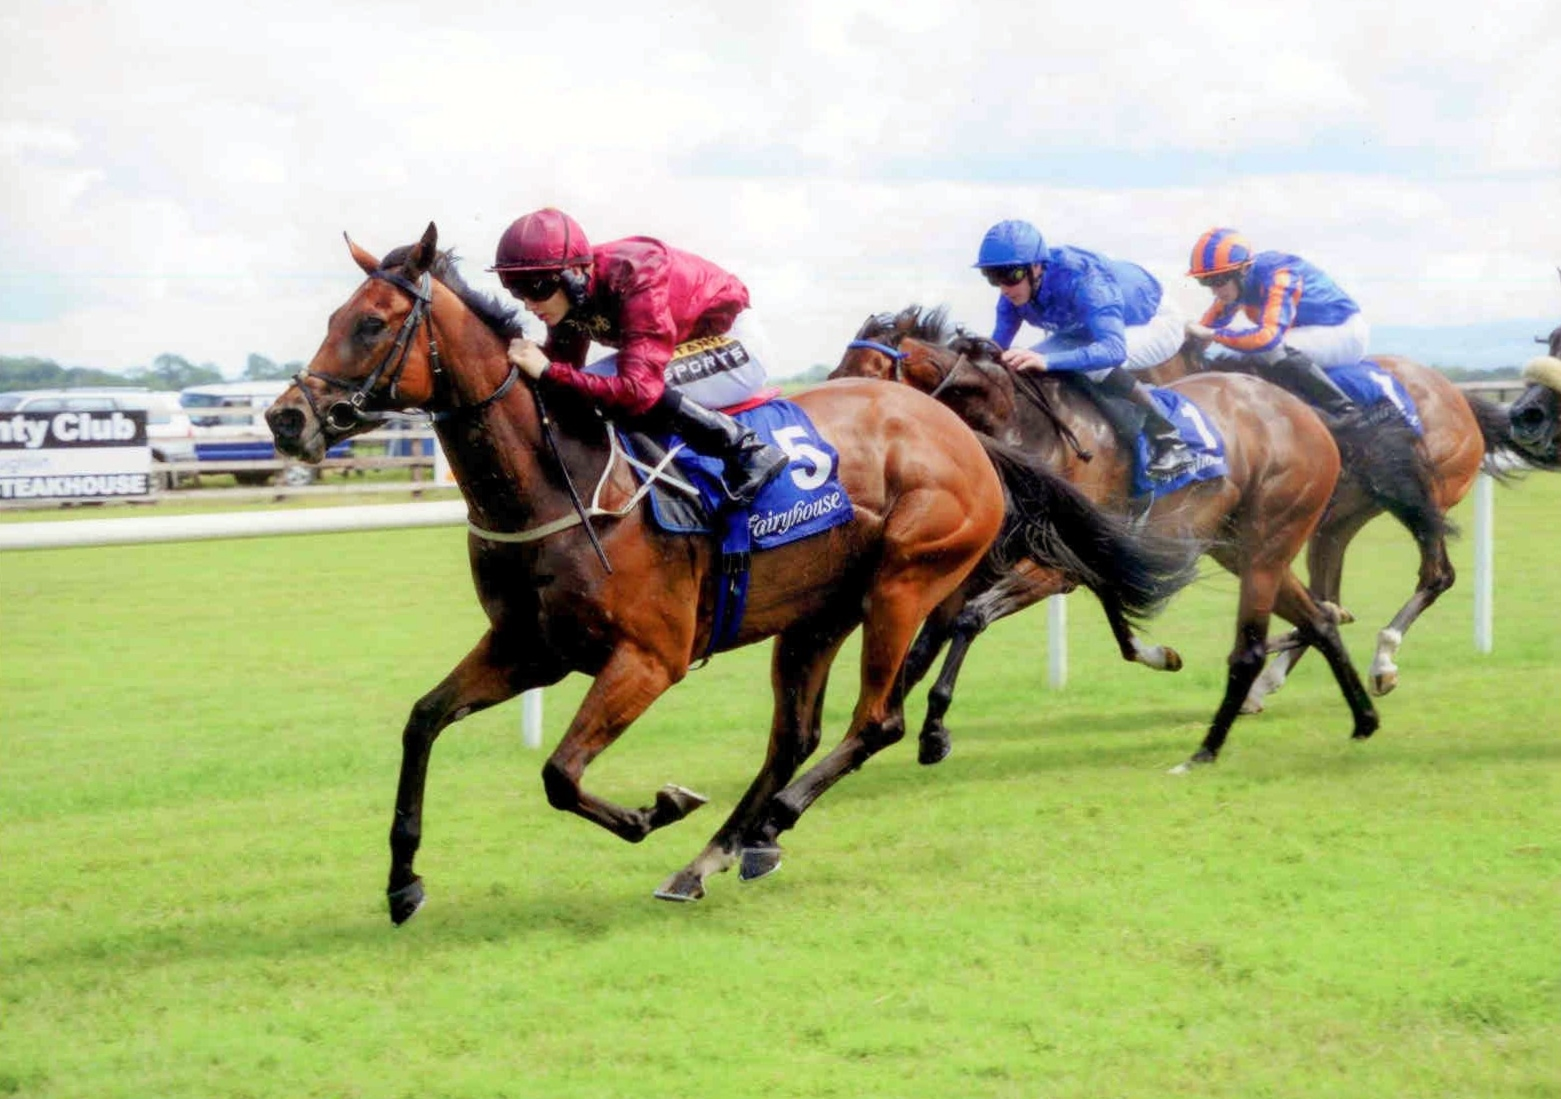 AINIPPE wins the Brownstown Stakes (Listed) at Fairyhouse on July 5th 2015